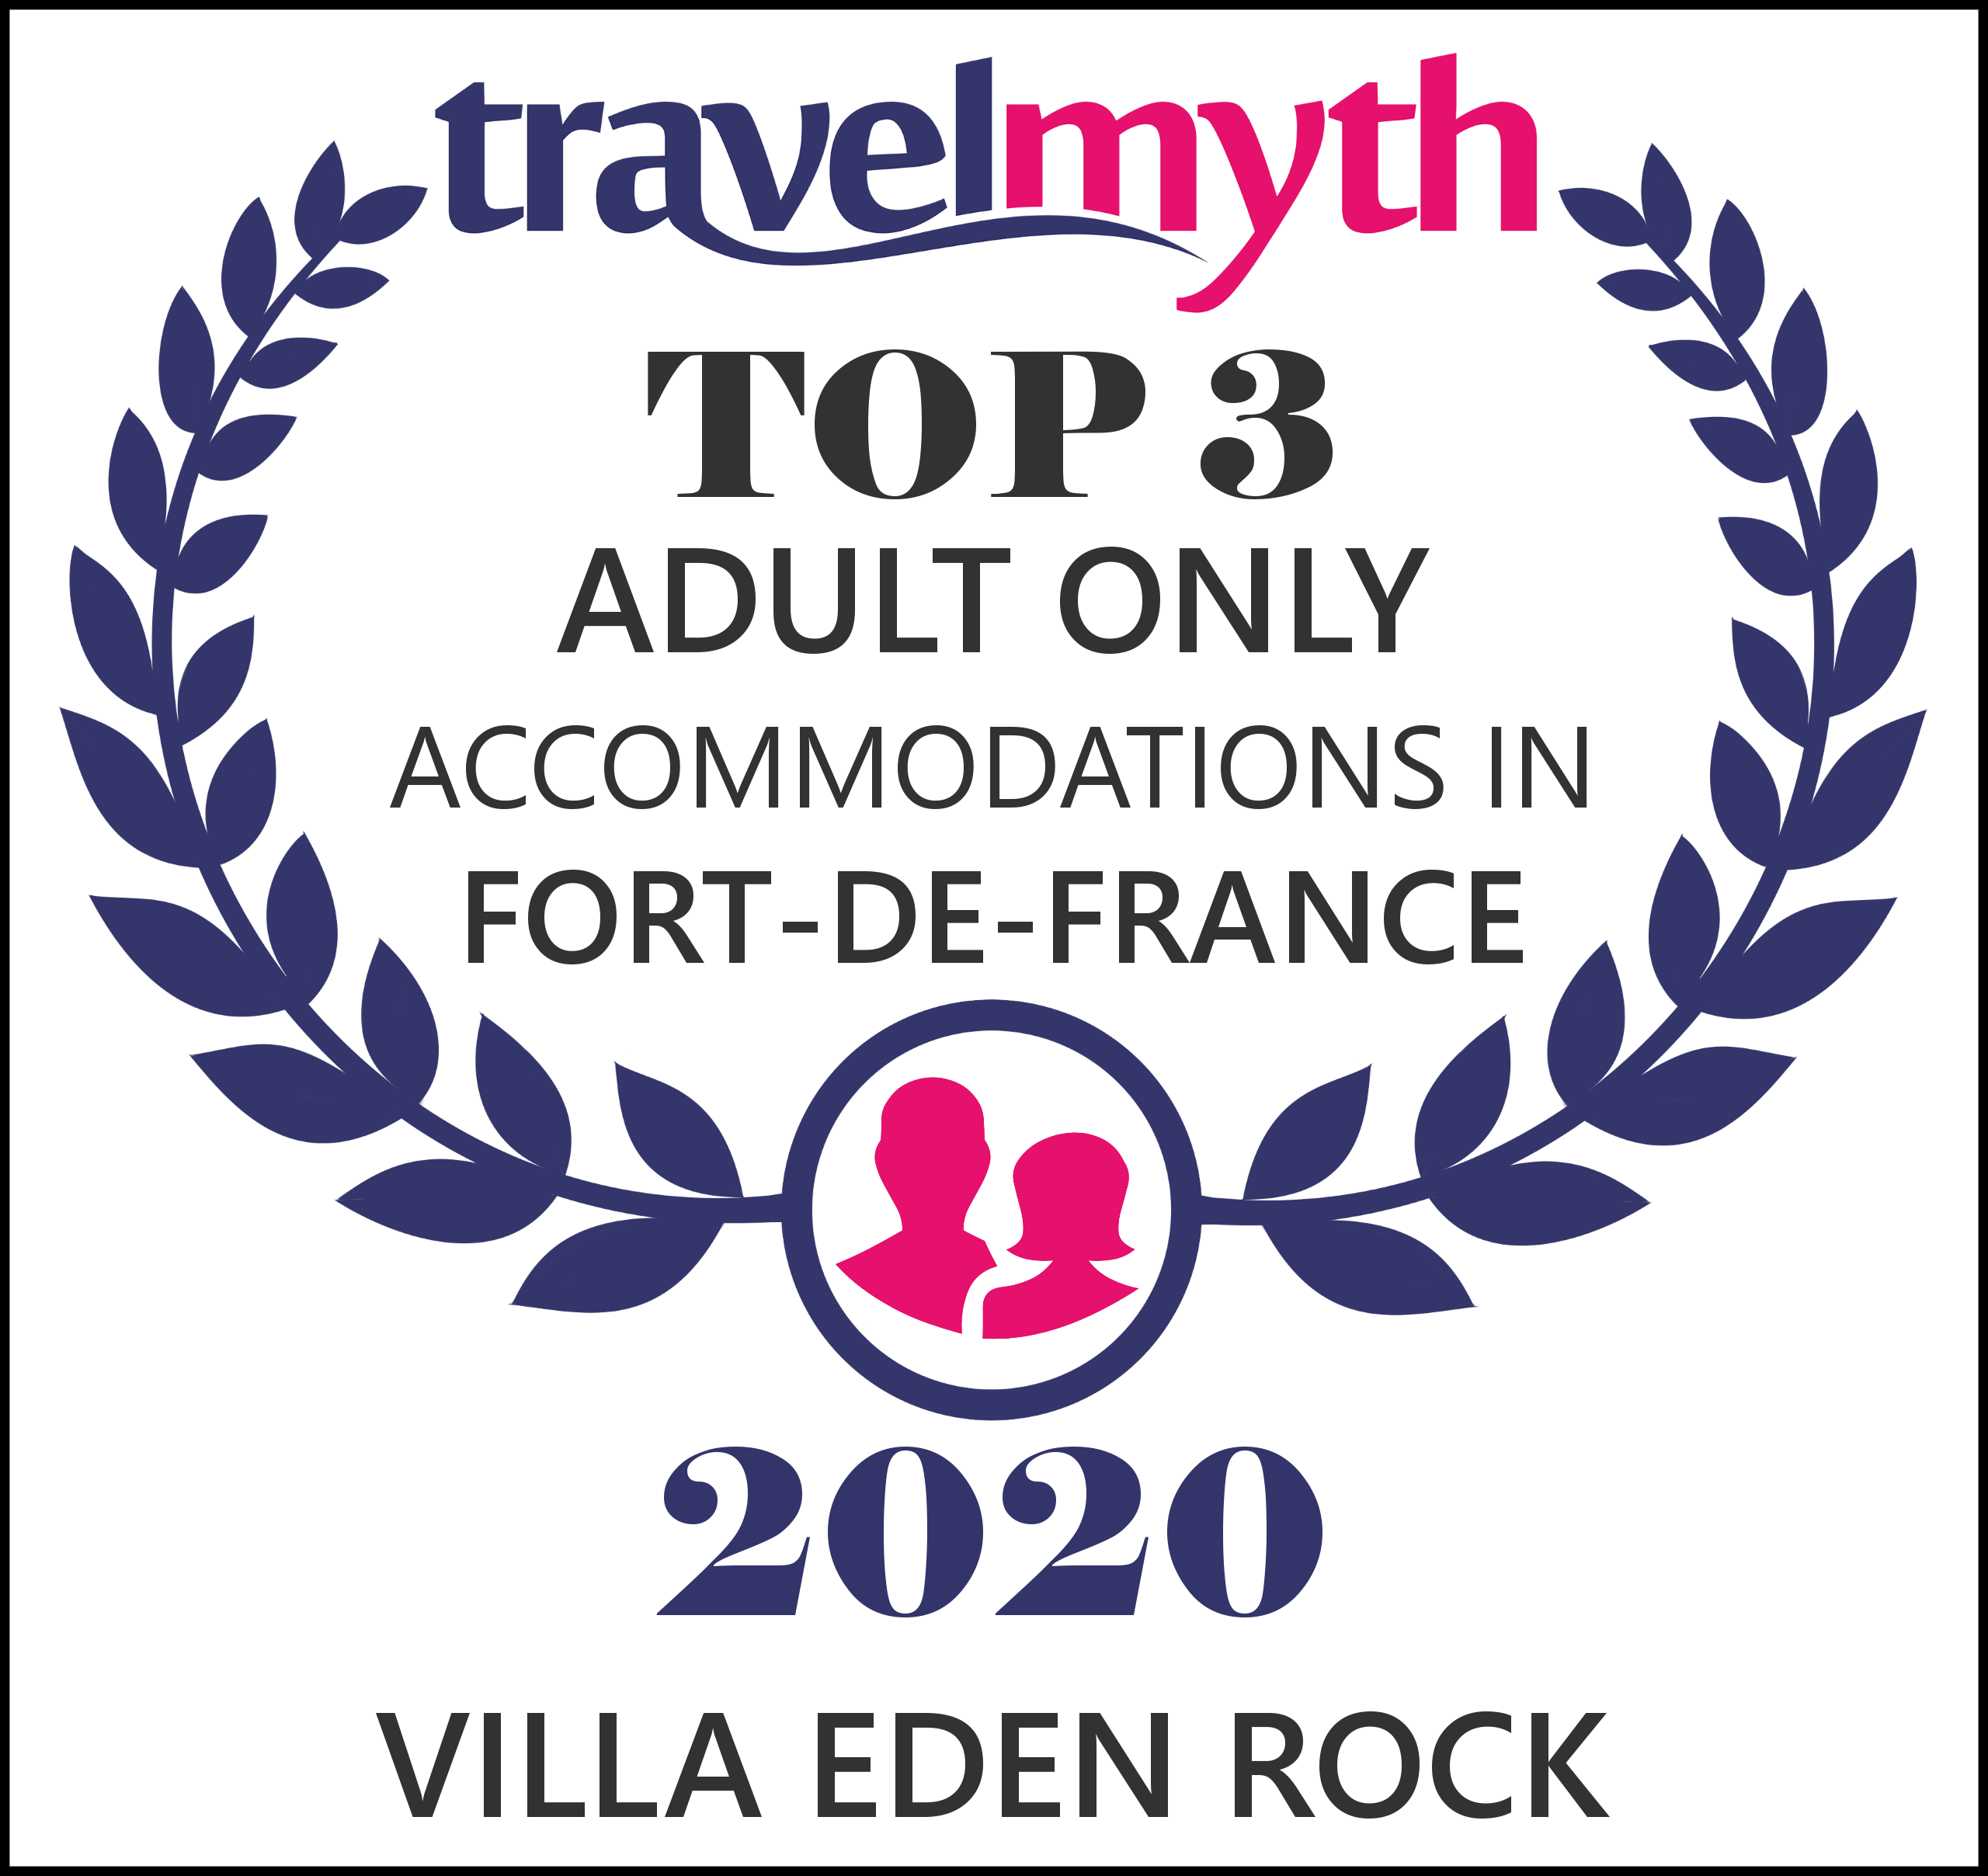 Travelmyth Award 2020